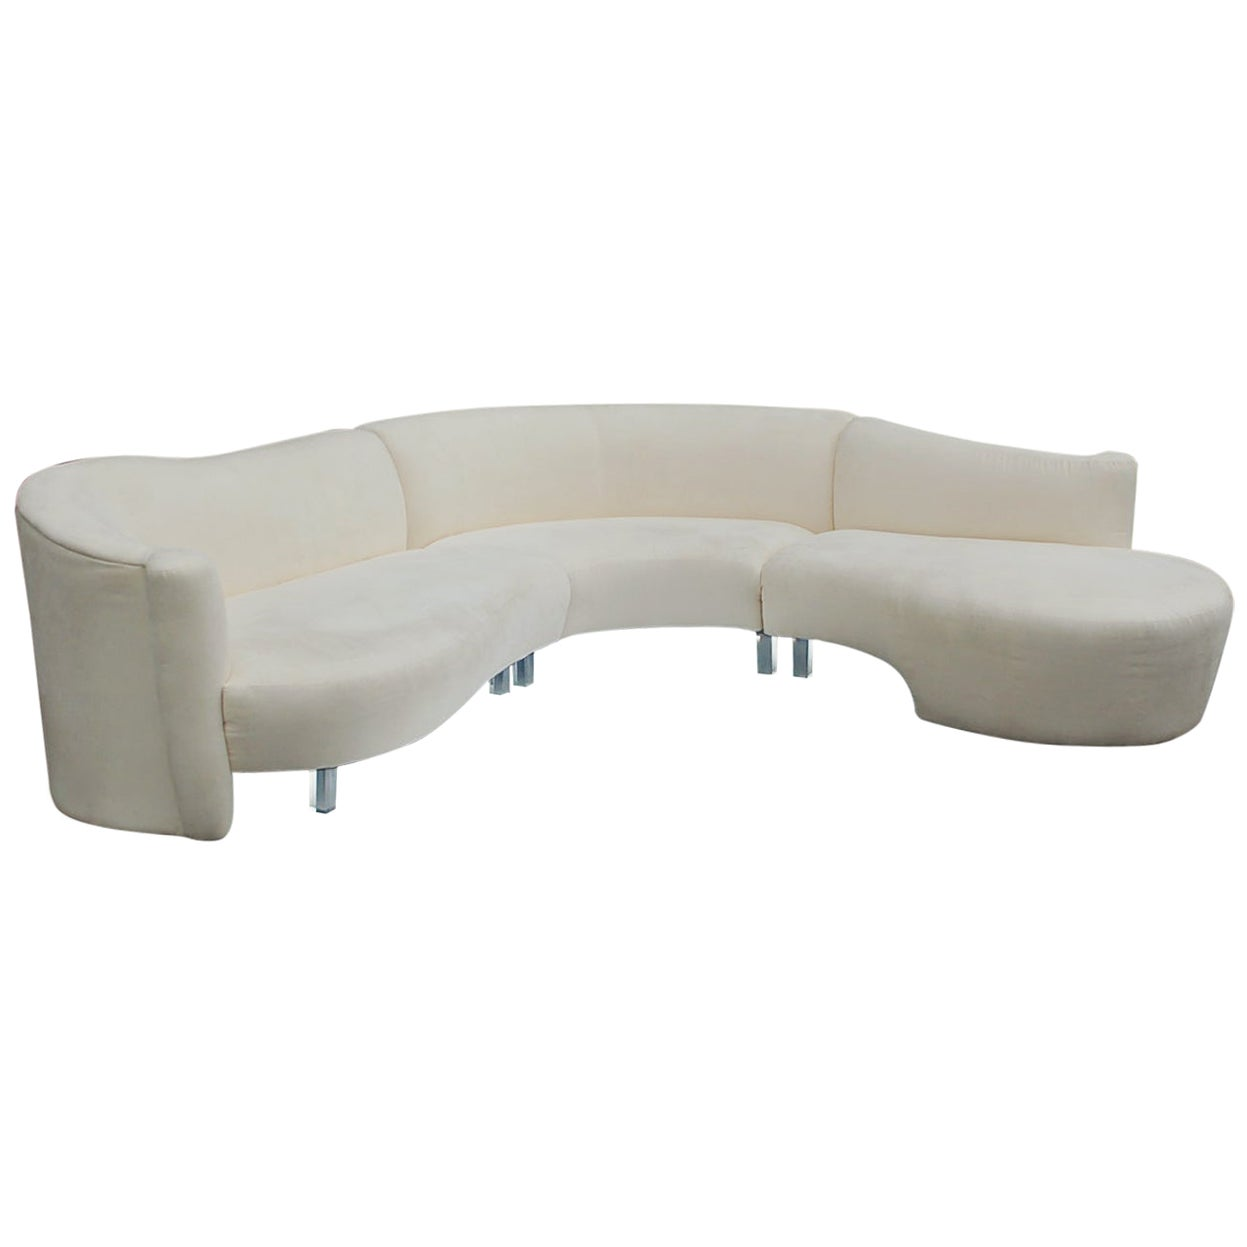 Mid-Century Modern White Serpentine Sectional Sofa by Weiman